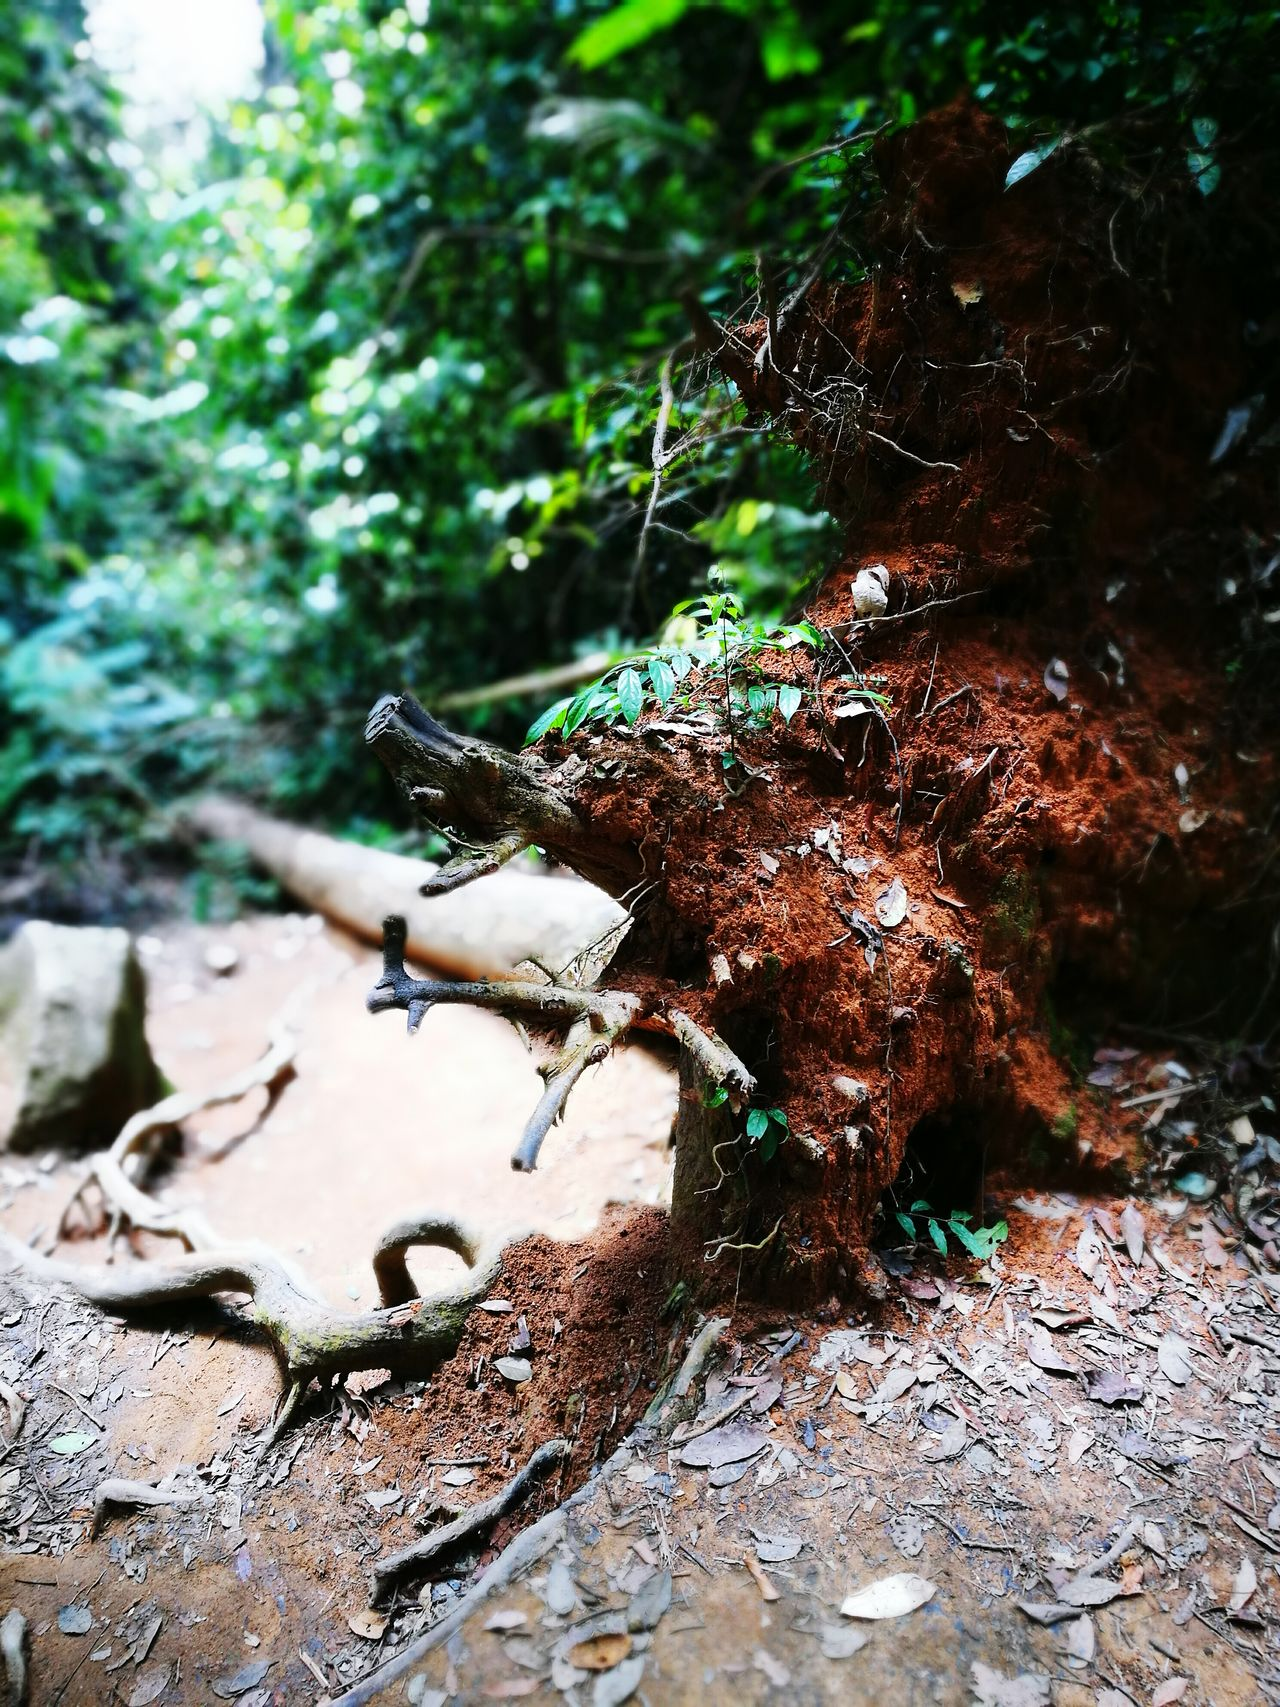 Forest Tree Nature Outdoors Day Beauty In Nature No People EyeEmNewHere Hiking Hiking Trail Fallen Tree HuaweiP9 P9leica Fragility Tree Leaf Roots Of Tree Green Color